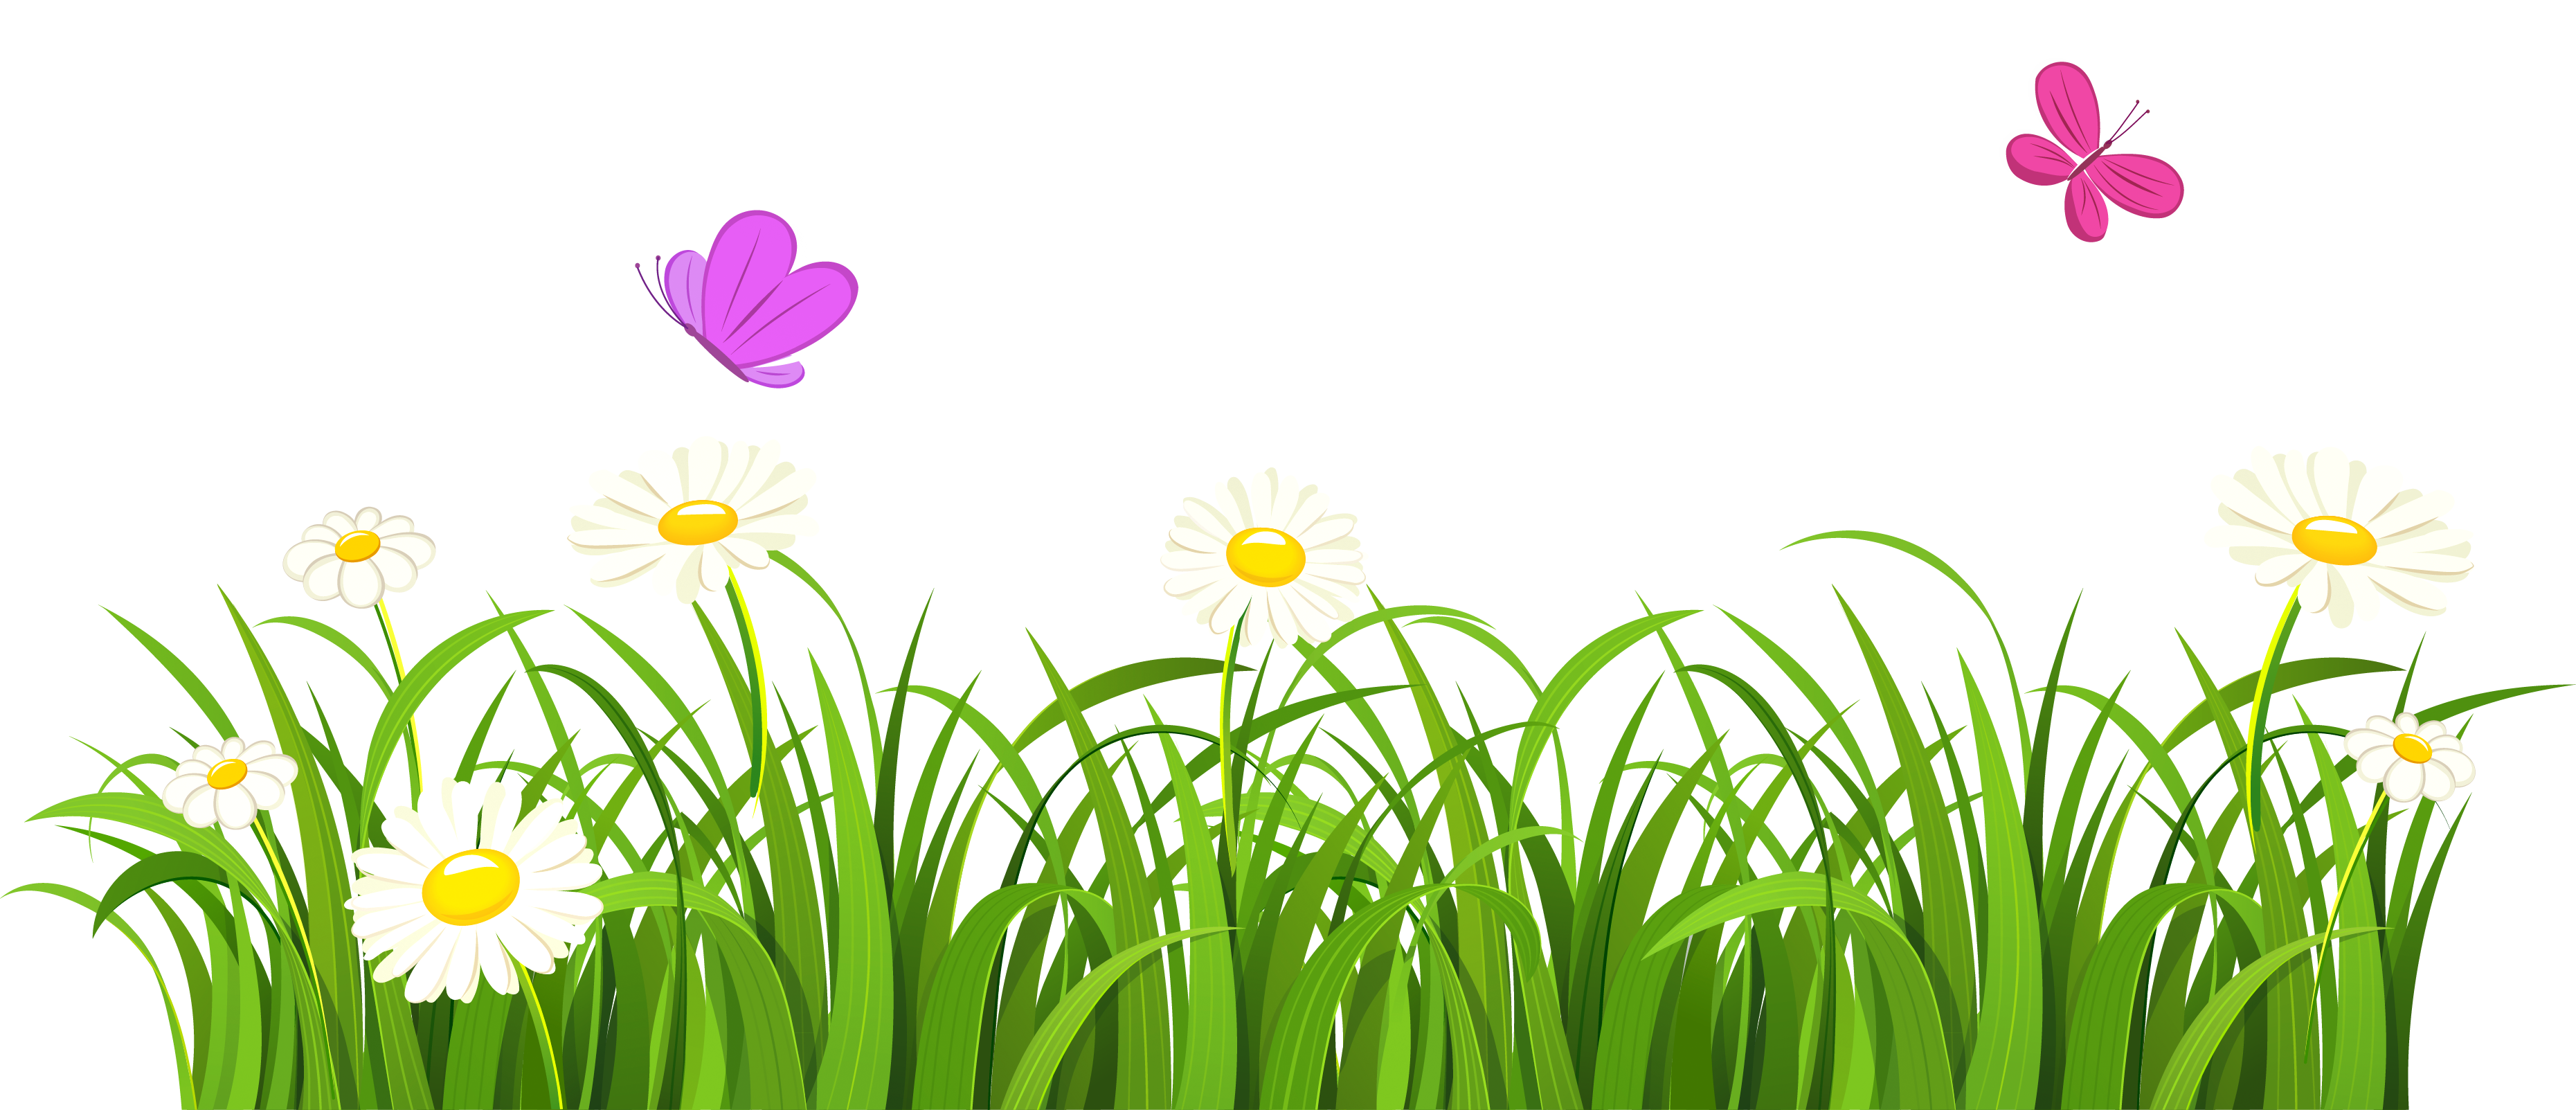 Grass And Butterflies Png Clipart In Grass Background Clipart Png